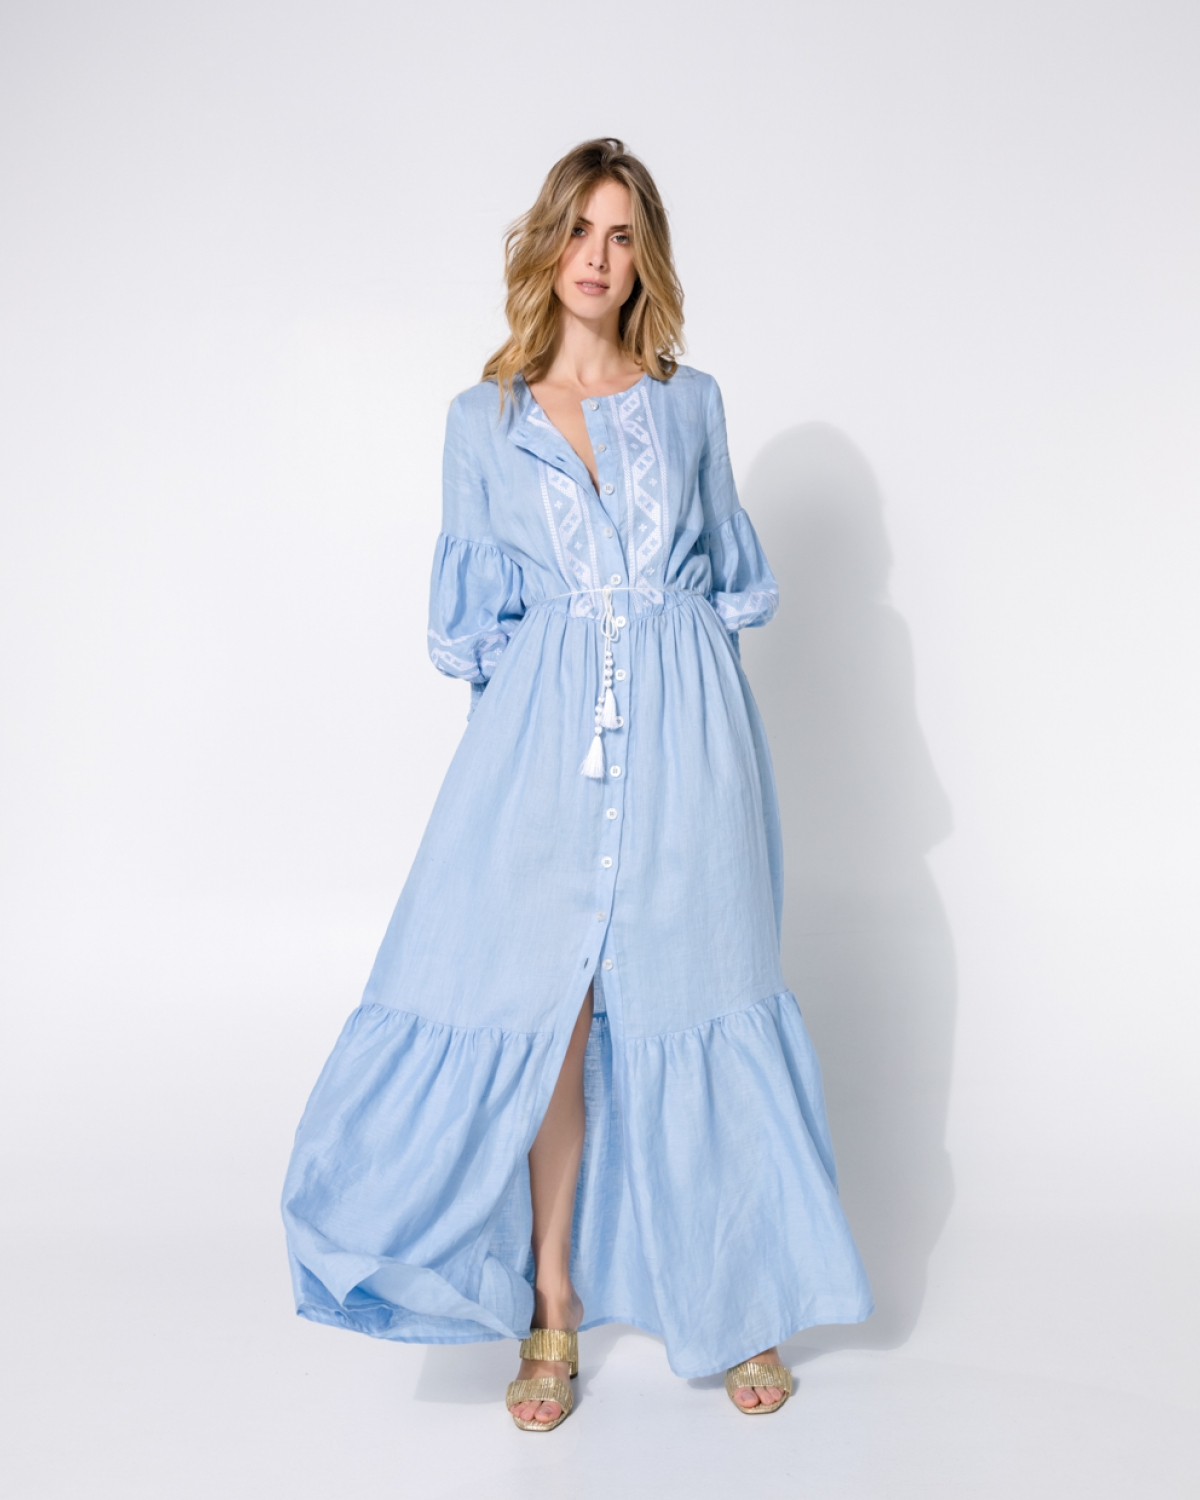 Lagun Light Blue Dress